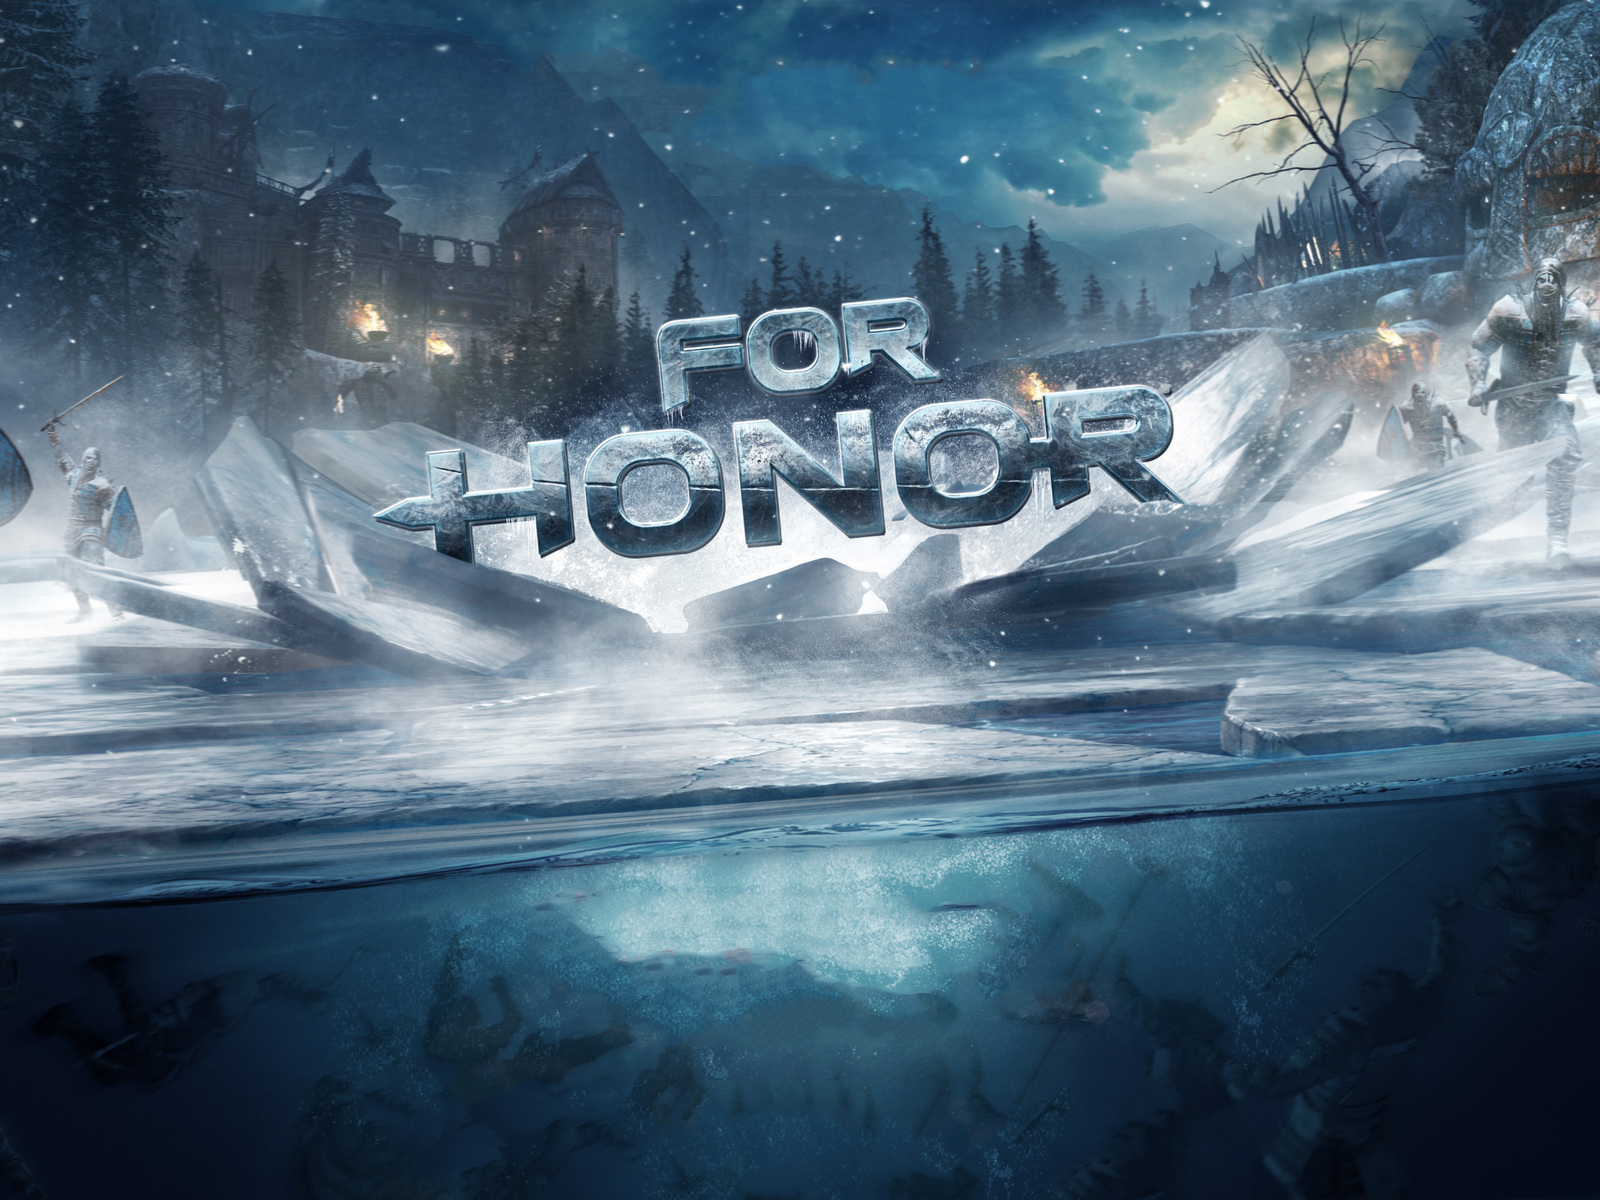 for-honor-frost-wind-4k-ux.jpg